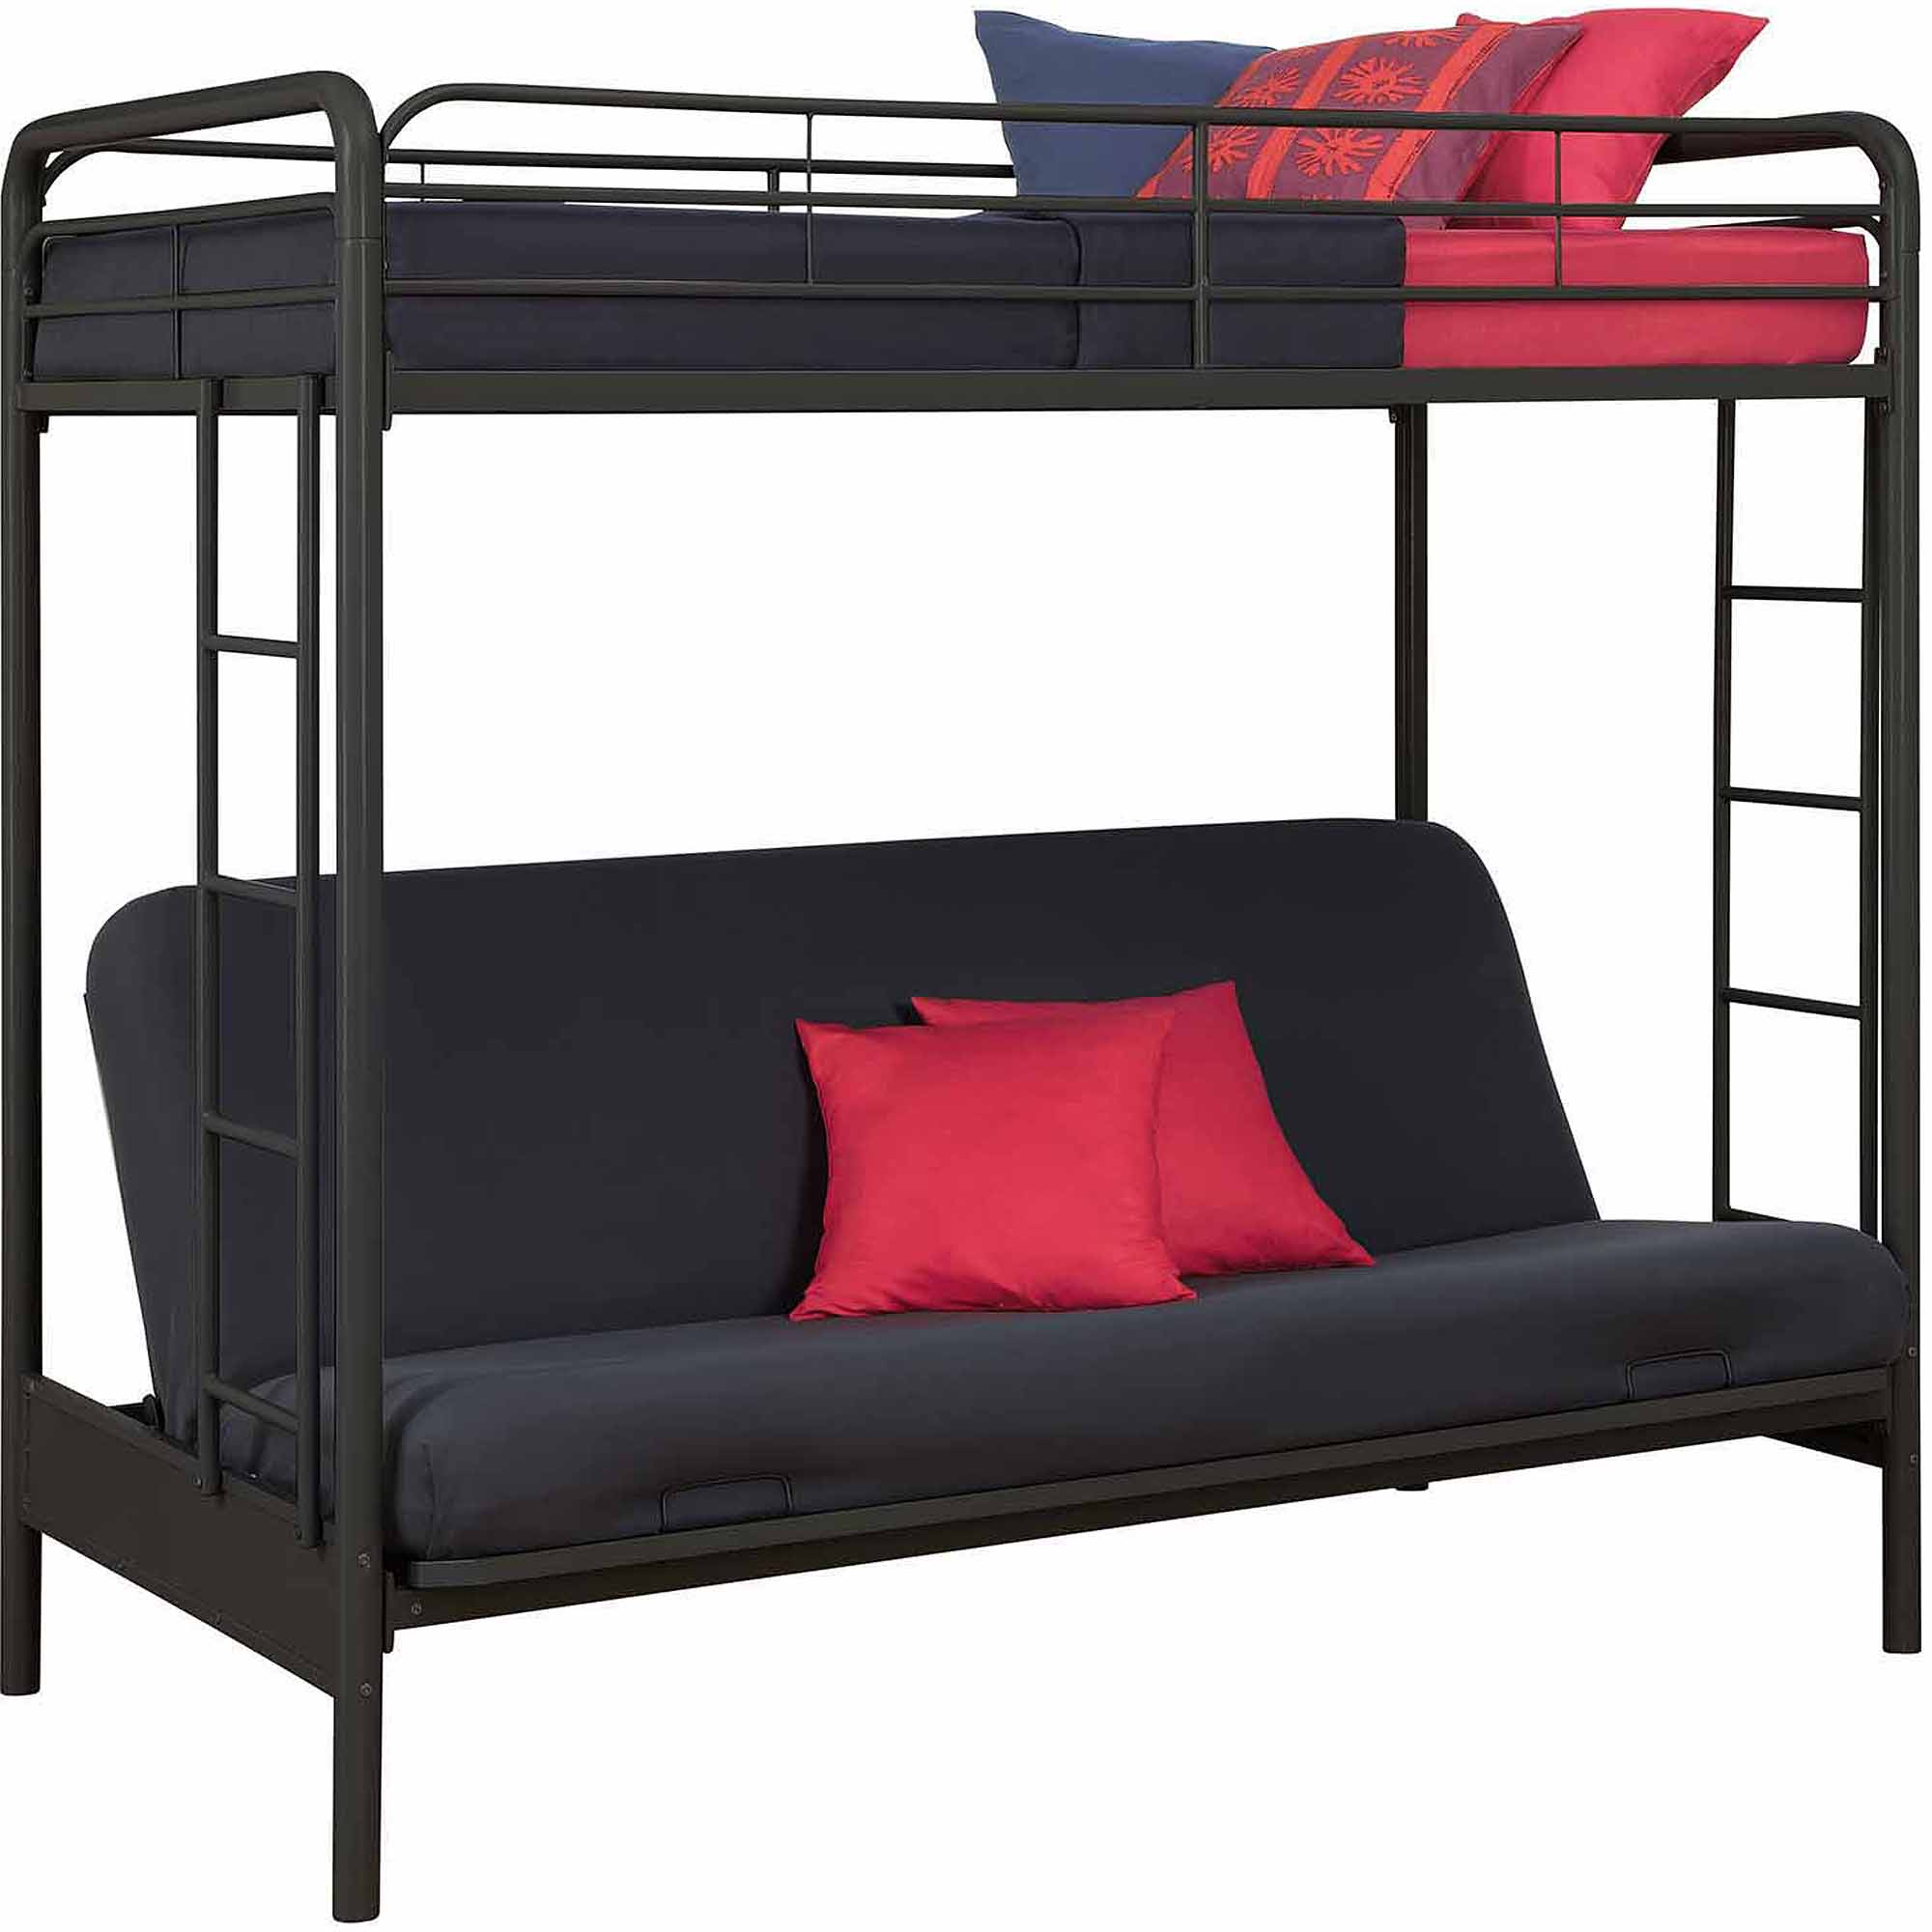 Metal bunk bed with slide - Metal Bunk Bed With Slide 46